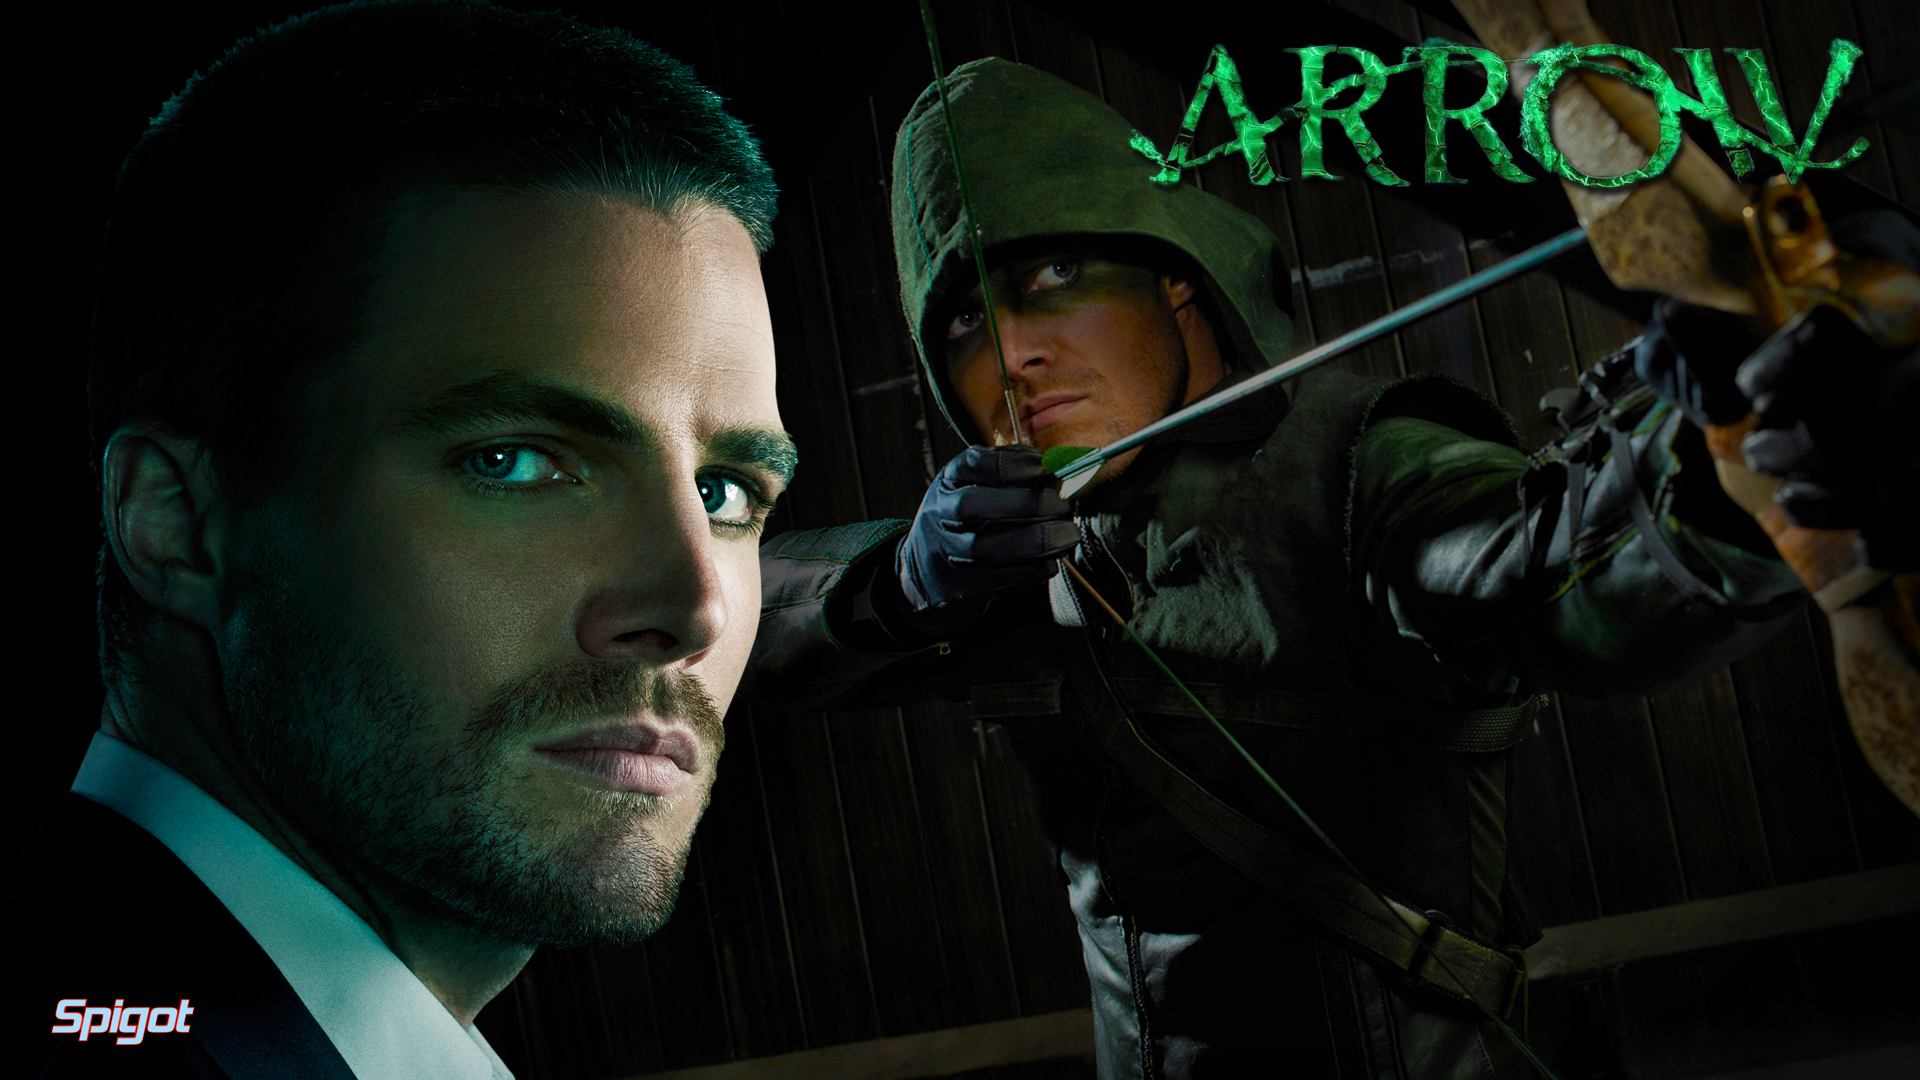 ... more wallpaper's of the awesome CW show Arrow and here they are